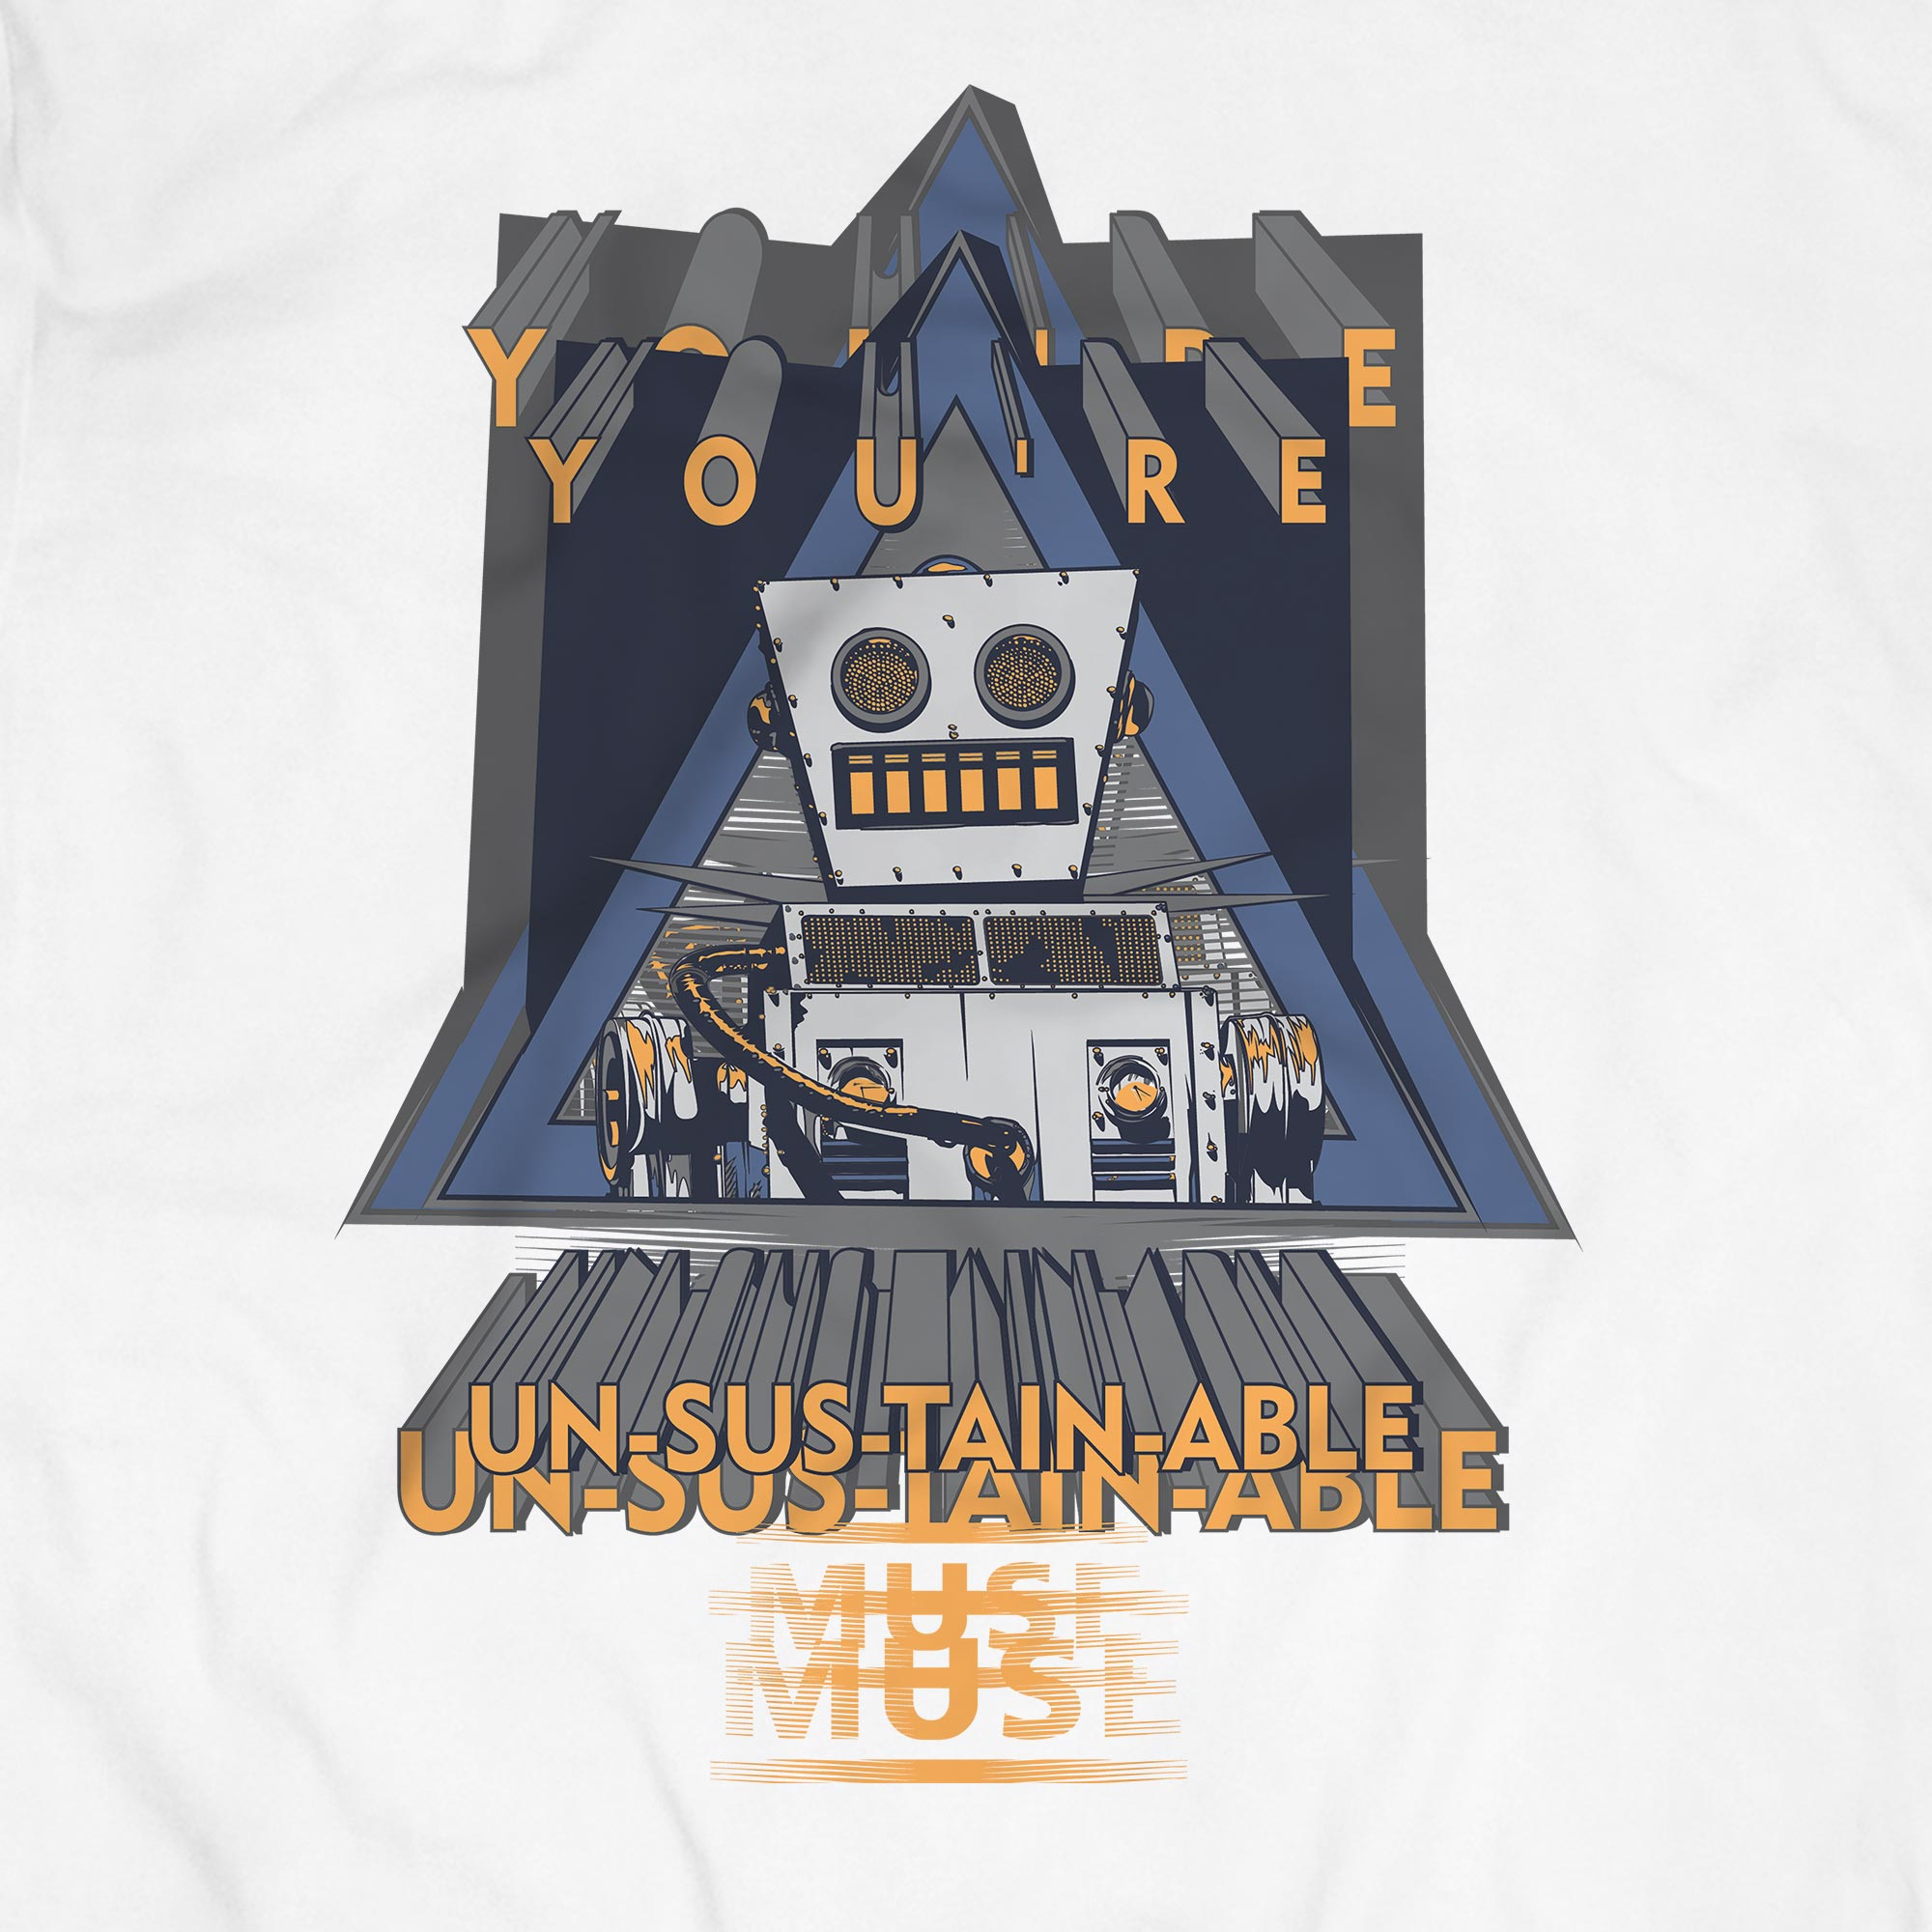 Camiseta Youre Un-sus-tain-able! - Muse - Masculino